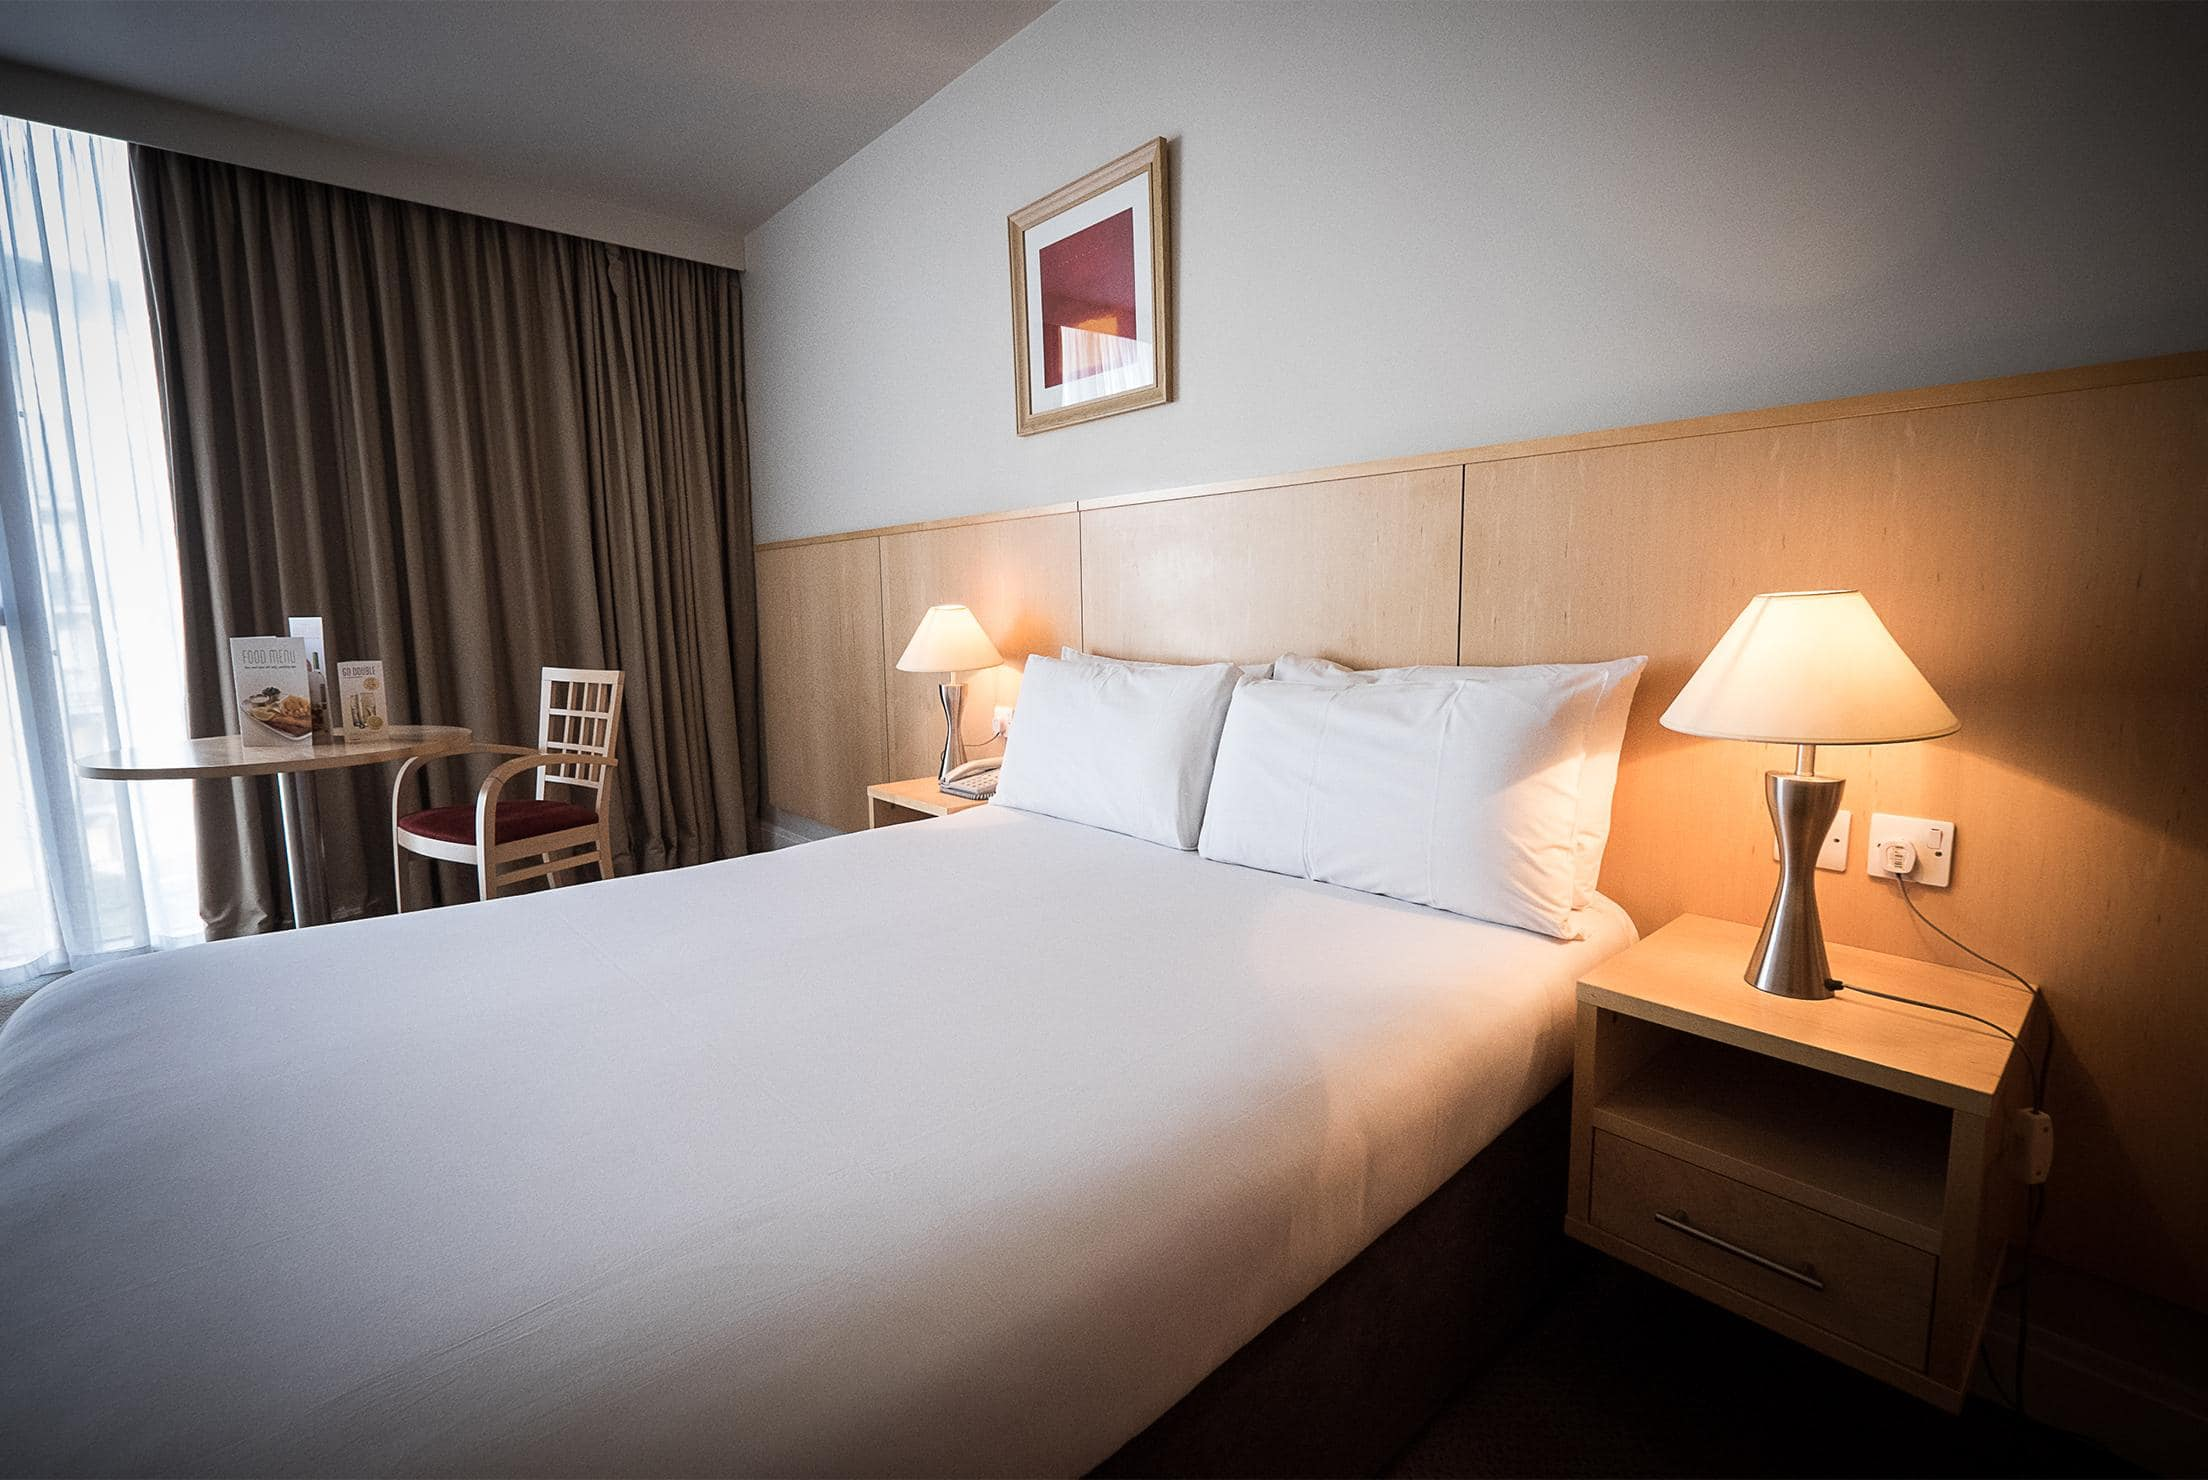 Airport Bed Hotel Travelodge Dublin Airport South Hotel Dublin Airport South Hotels